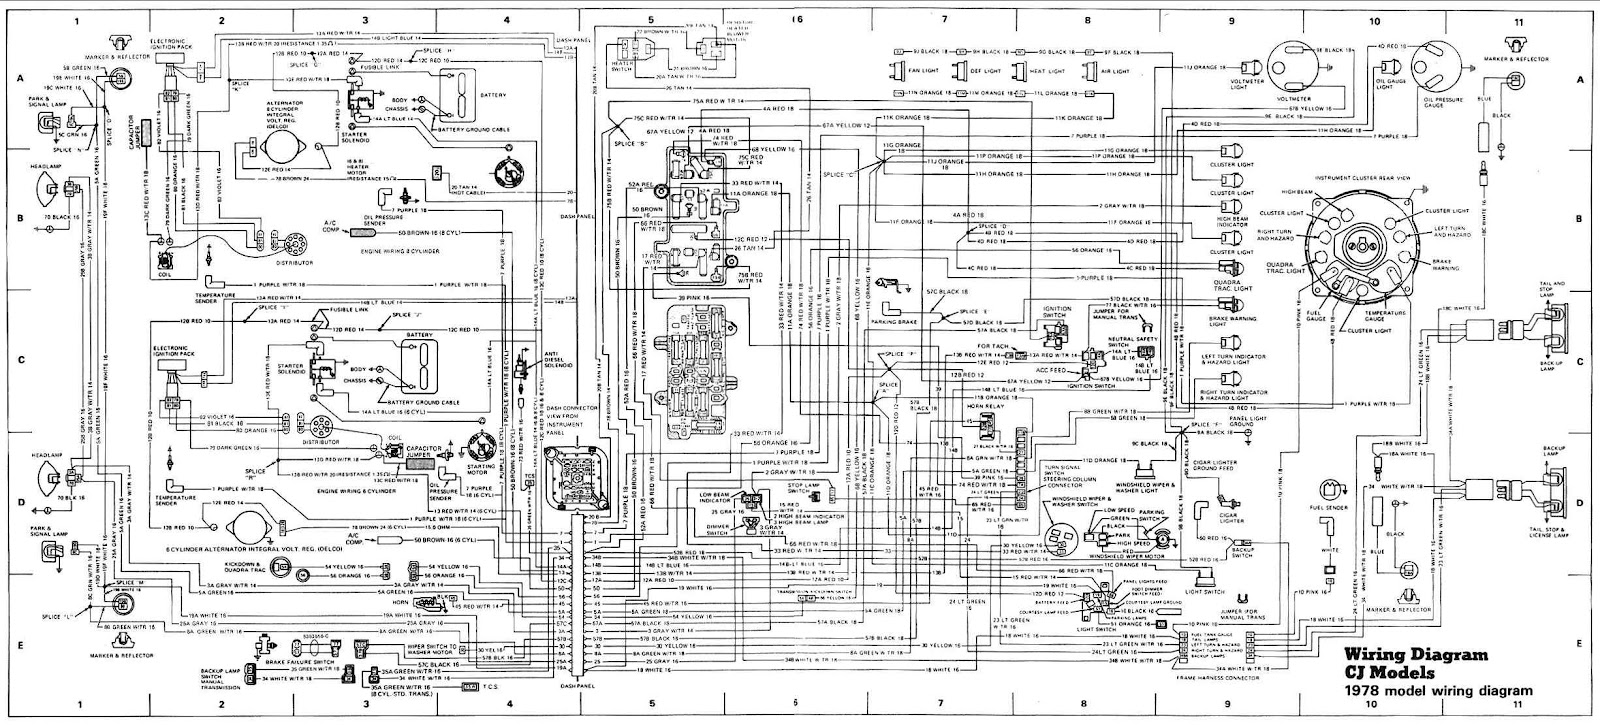 Jeep CJ Models 1978 Complete Electrical Wiring Diagram jeep stereo wiring diagram jeep free wiring diagrams 2003 jeep liberty radio wiring diagram at bayanpartner.co